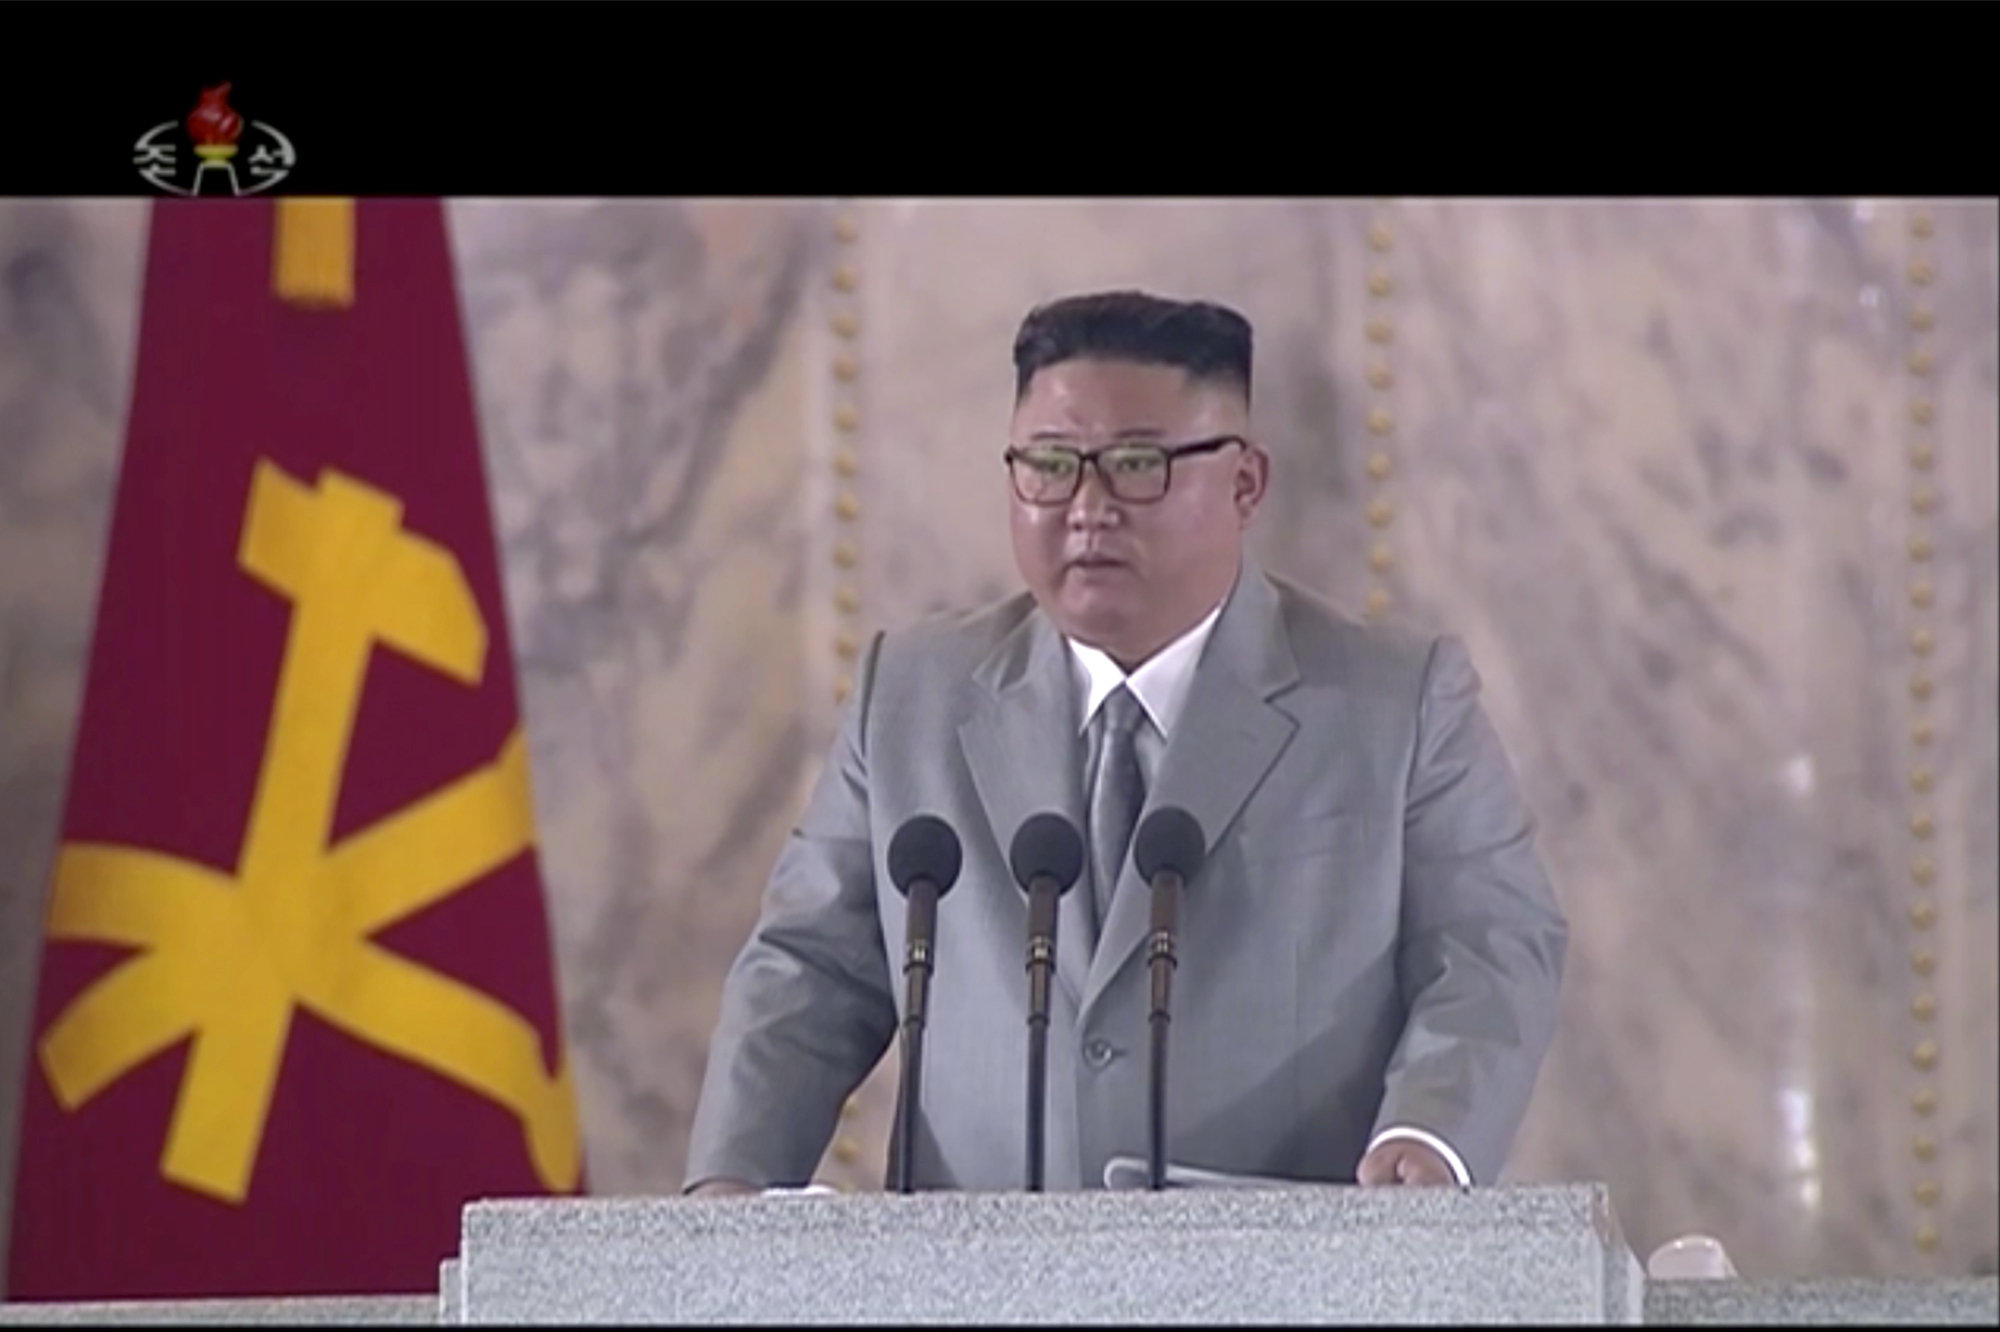 North Korean leader Kim Jong Un delivers a speech during a ceremony to mark to celebrate the 75th anniversary of the country's ruling party in Pyongyang. (KRT via AP)